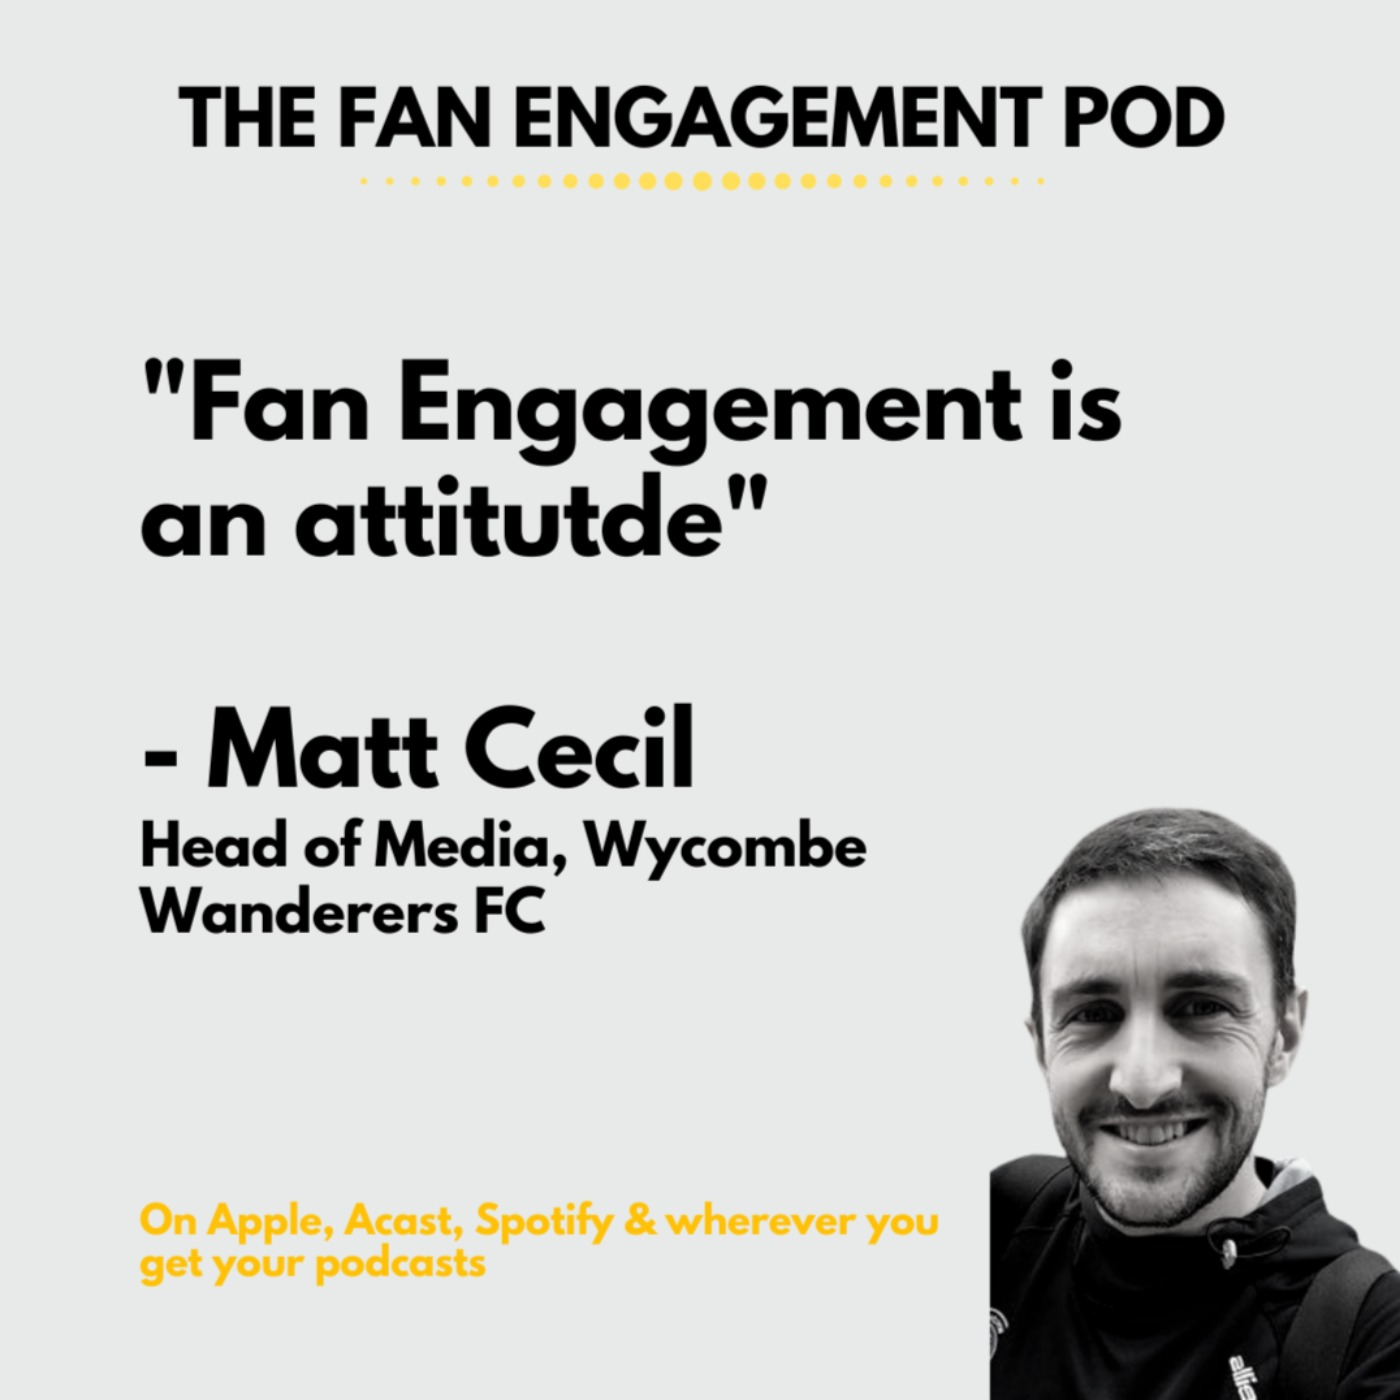 Being a fan and a professional in Fan Engagement : Matt Cecil, Wycombe Wanderers